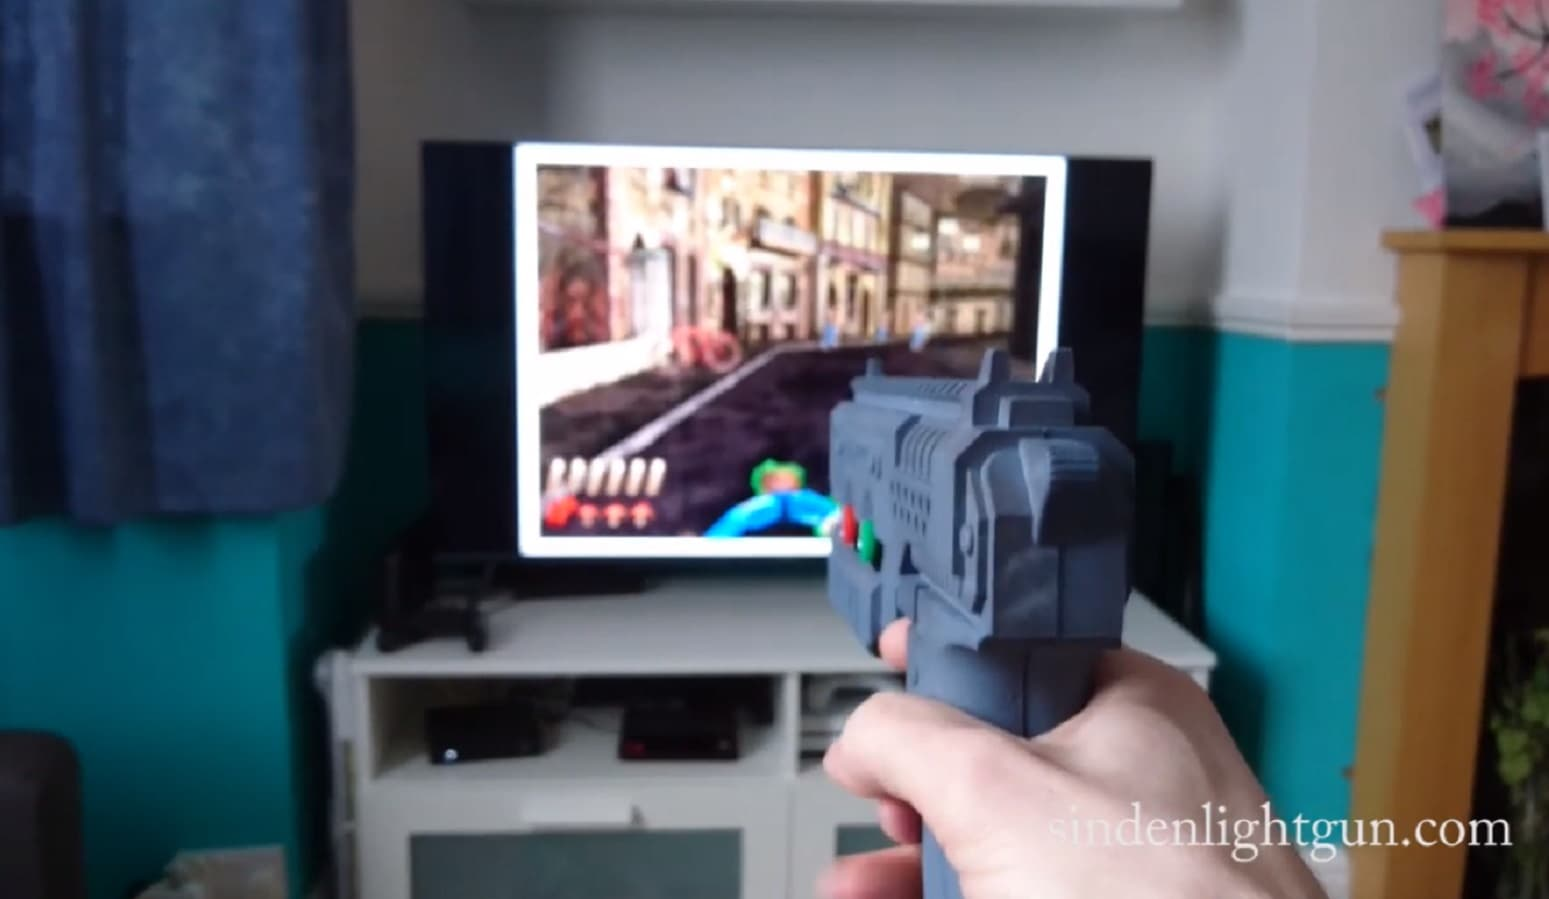 sinden lightgun for lcd screens being used